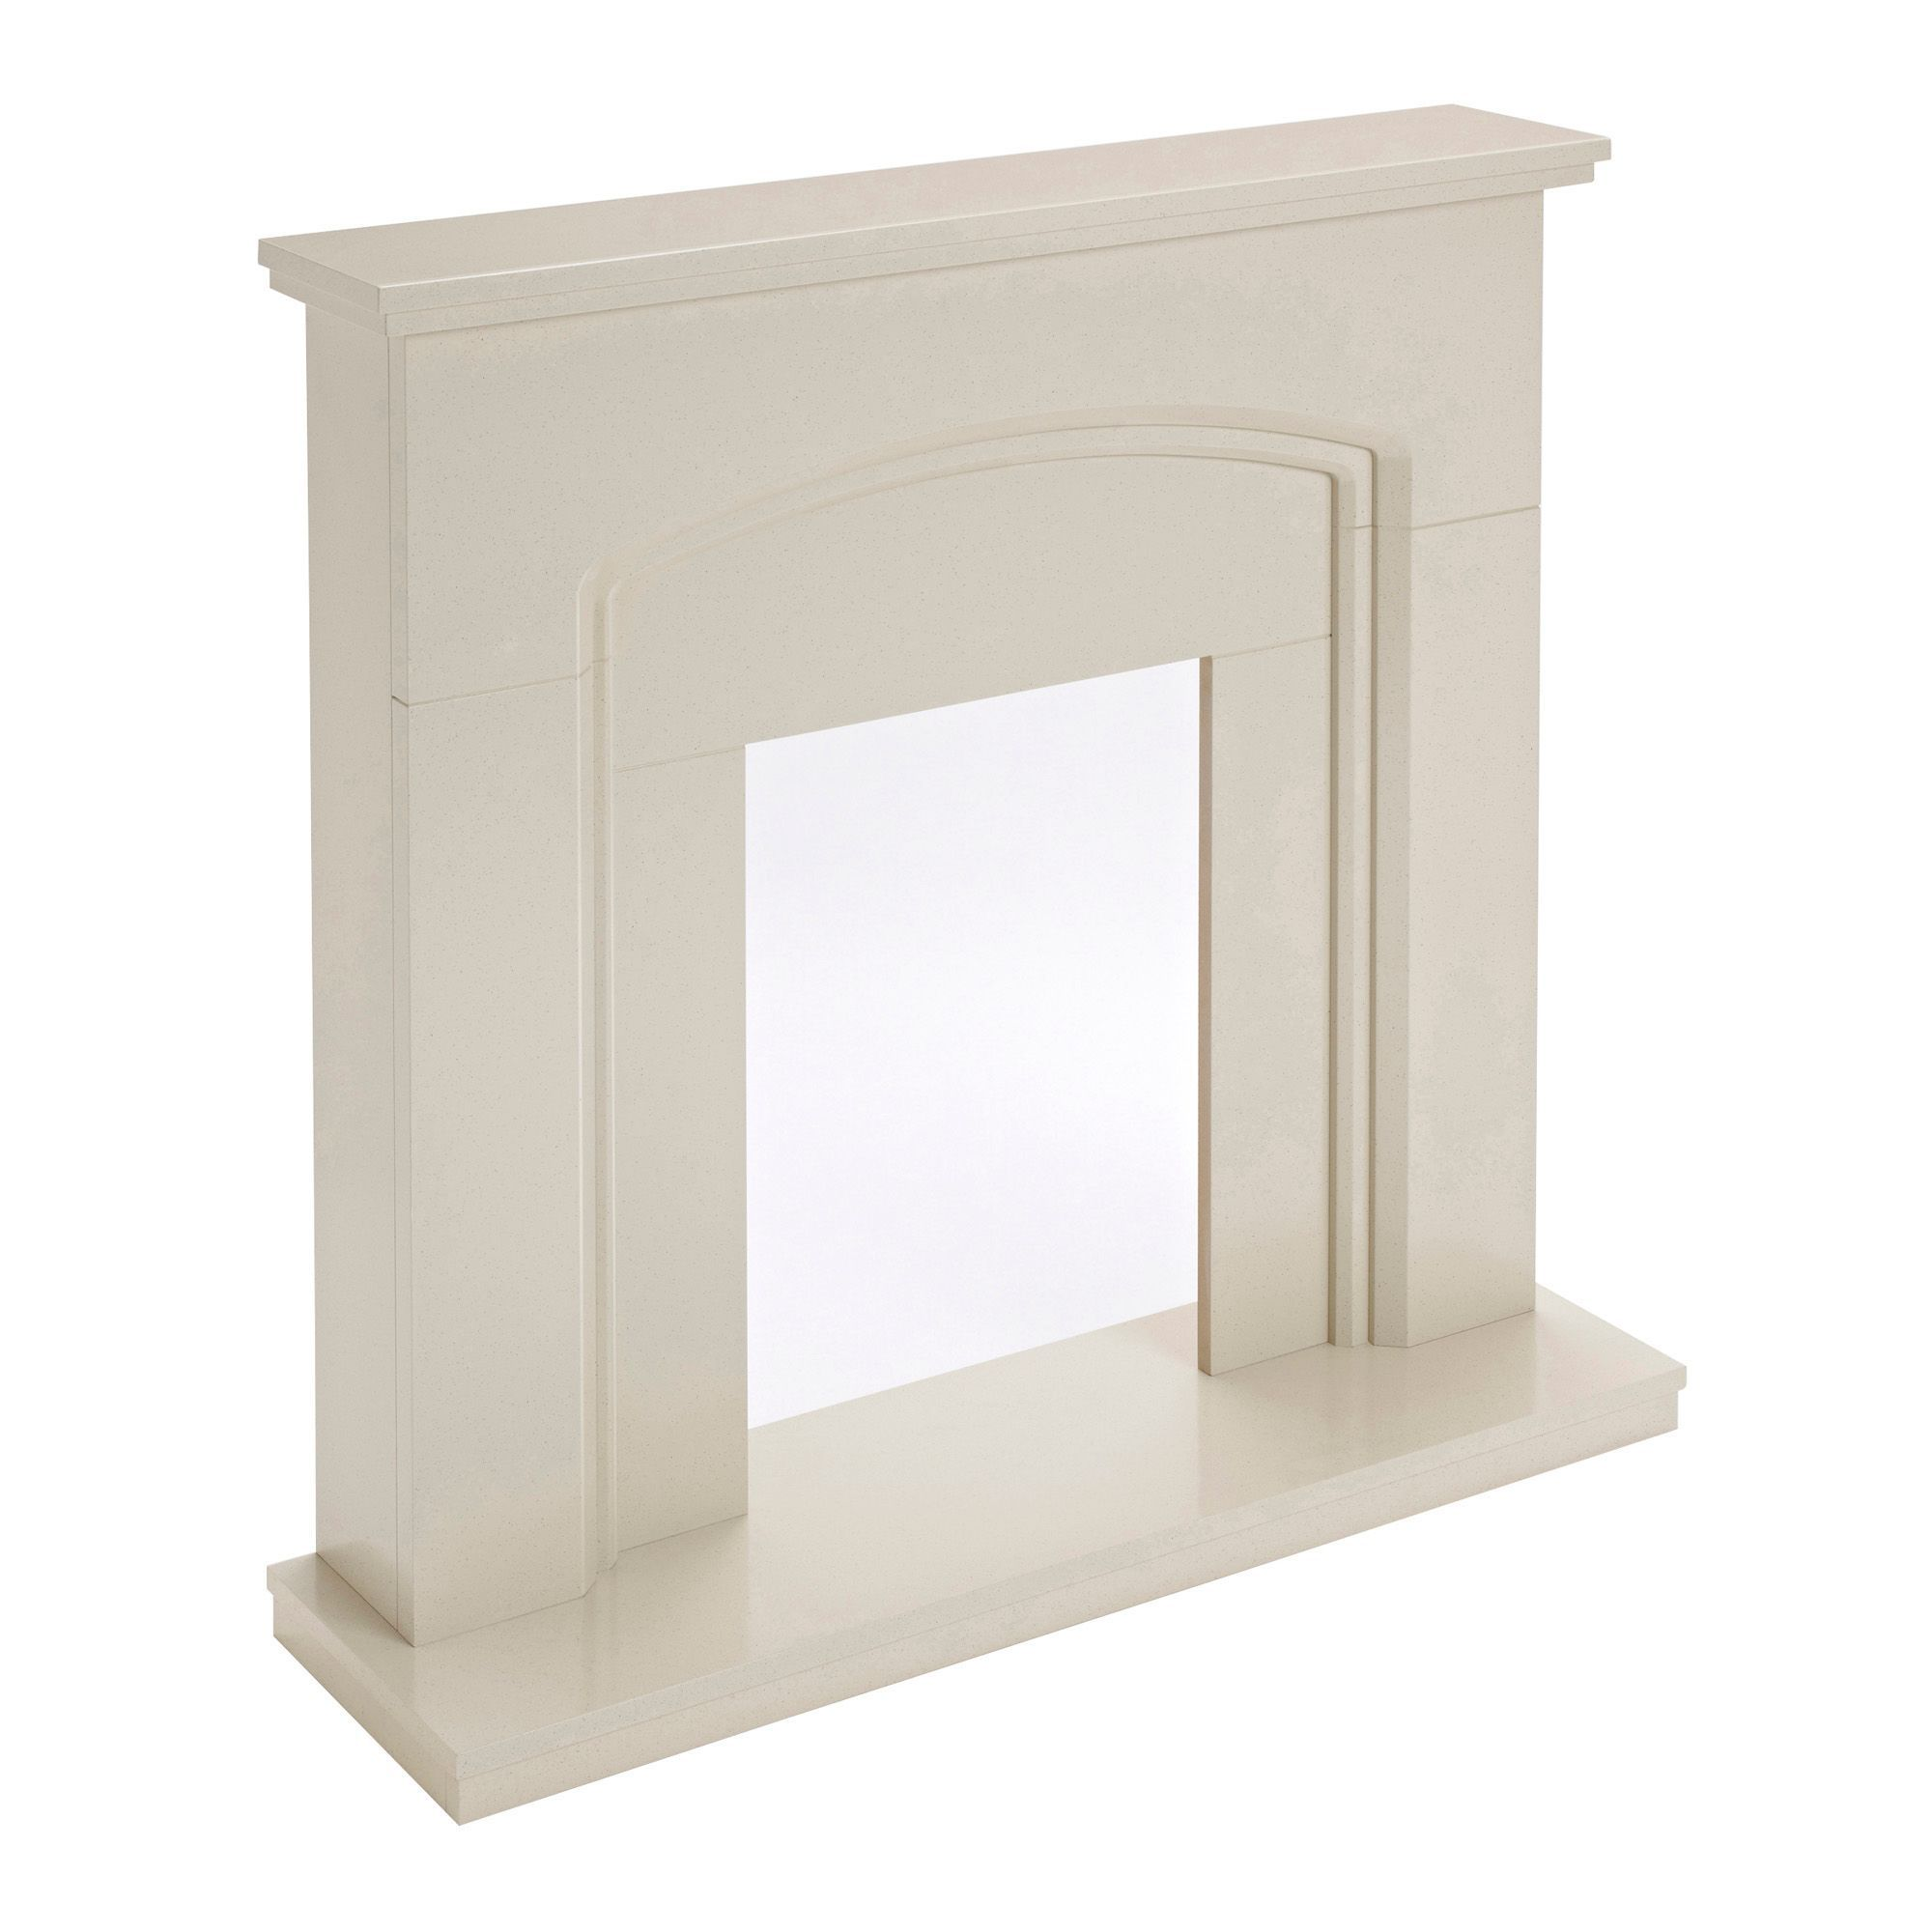 sacramento almond stone mdf fire surround fire surround living